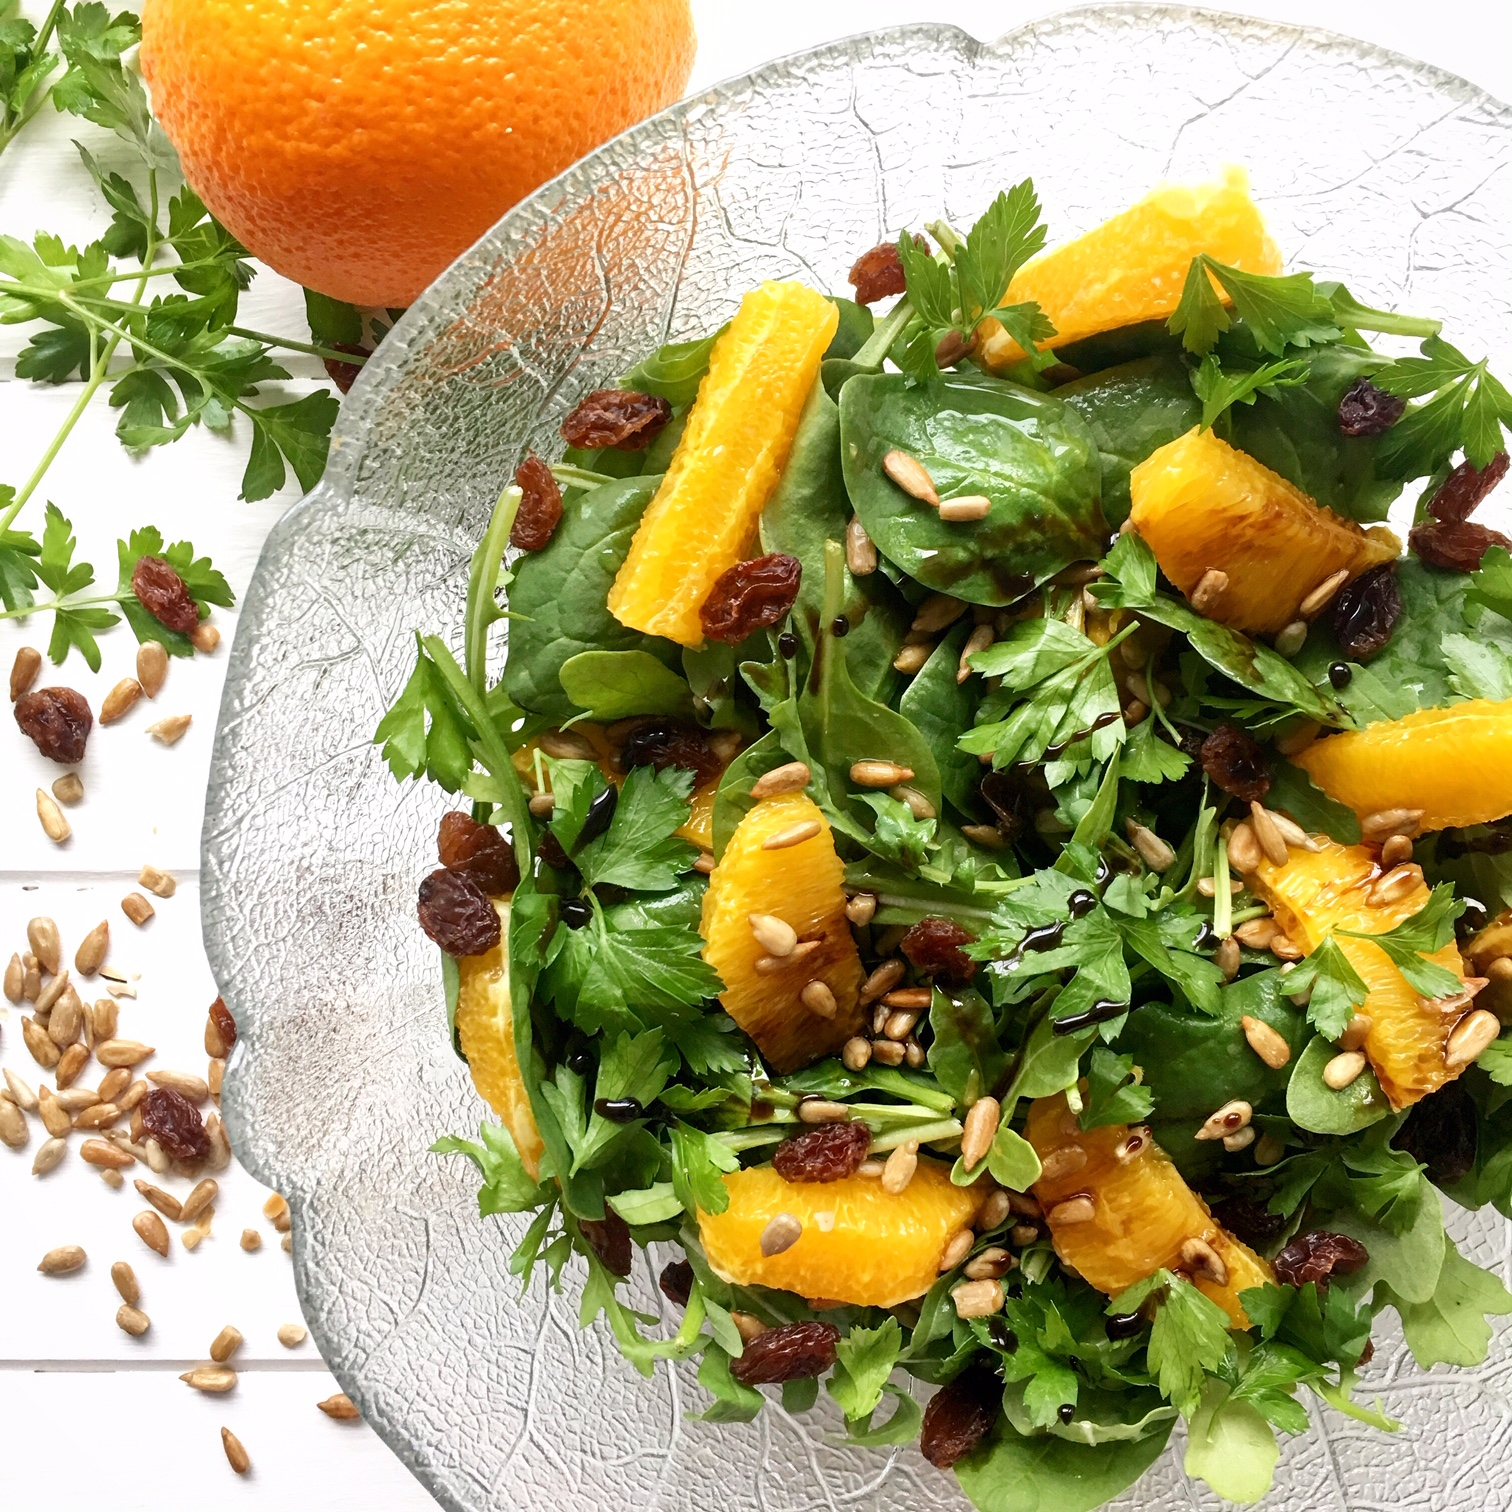 Orange, Parsley & Sunflower Salad